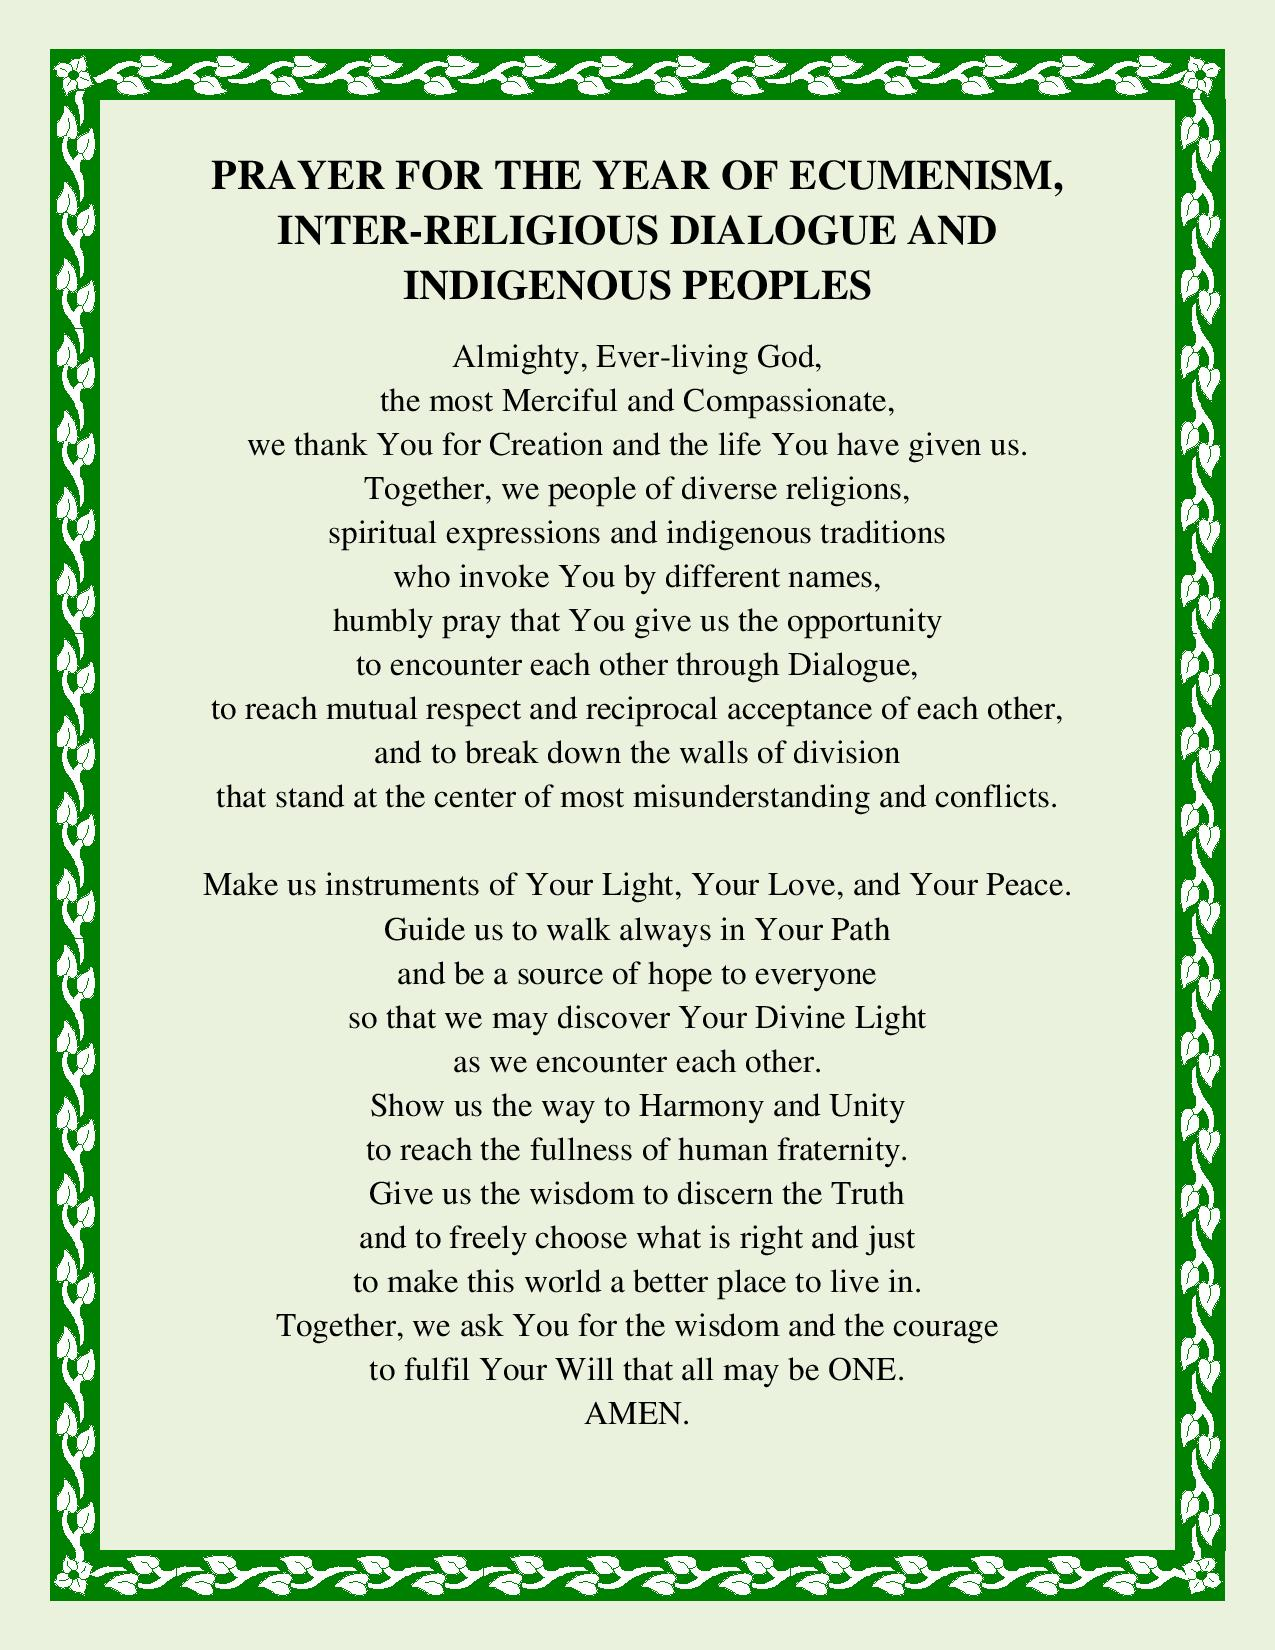 Prayer for the Year of Ecumenism, Interreligious Dialogue & Indigenous Peoples